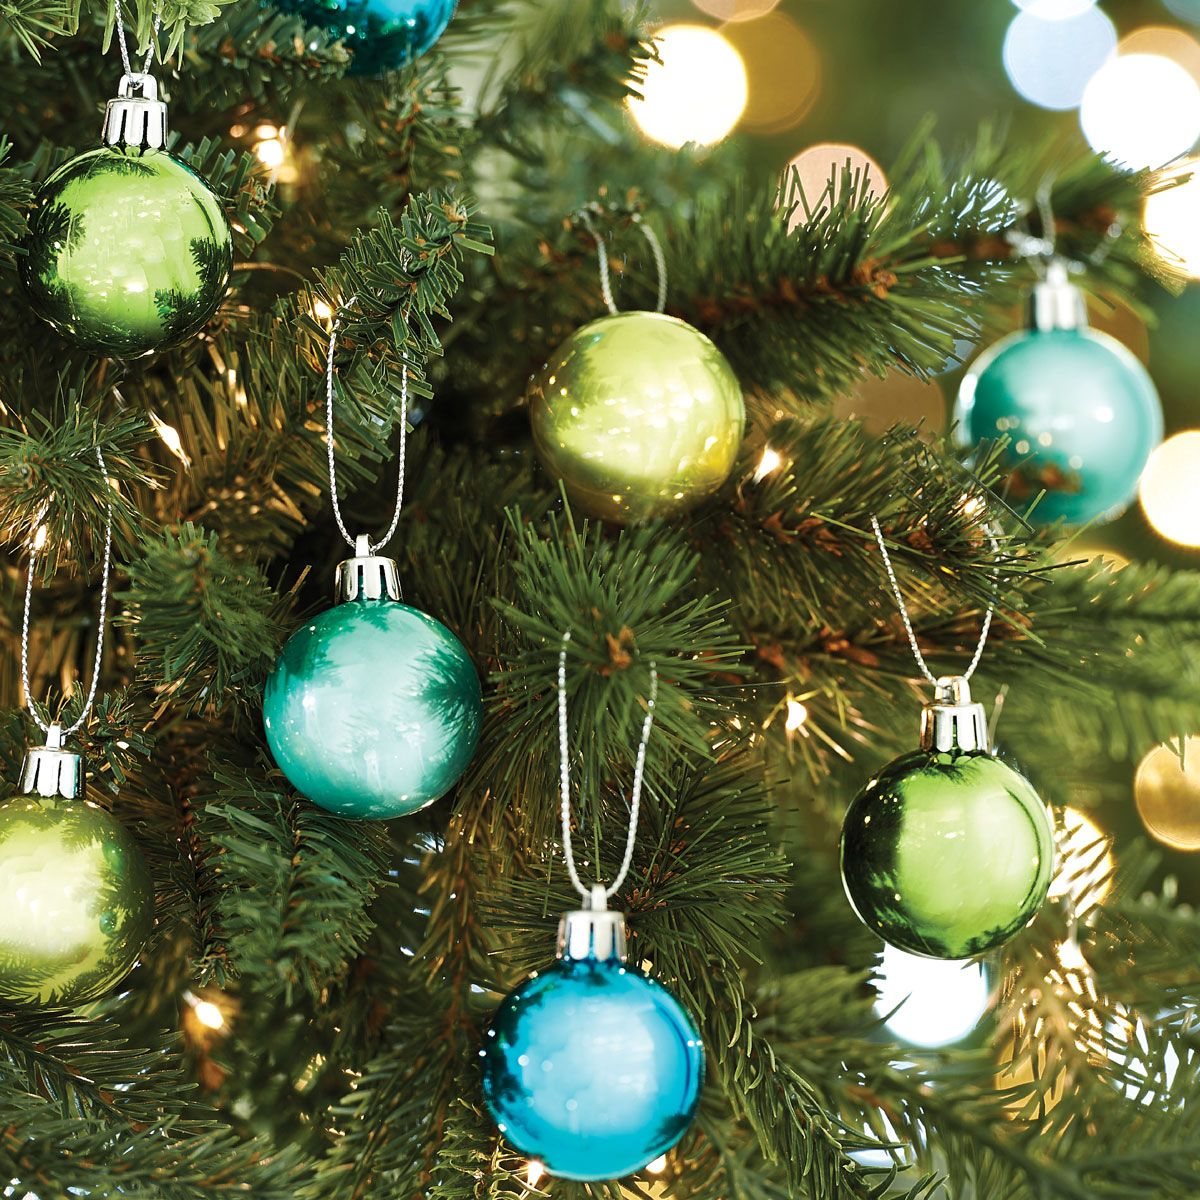 AROUND THE WORLD BOXED BAUBLES 40MM X 24 - AQUA/ LIME GREEN